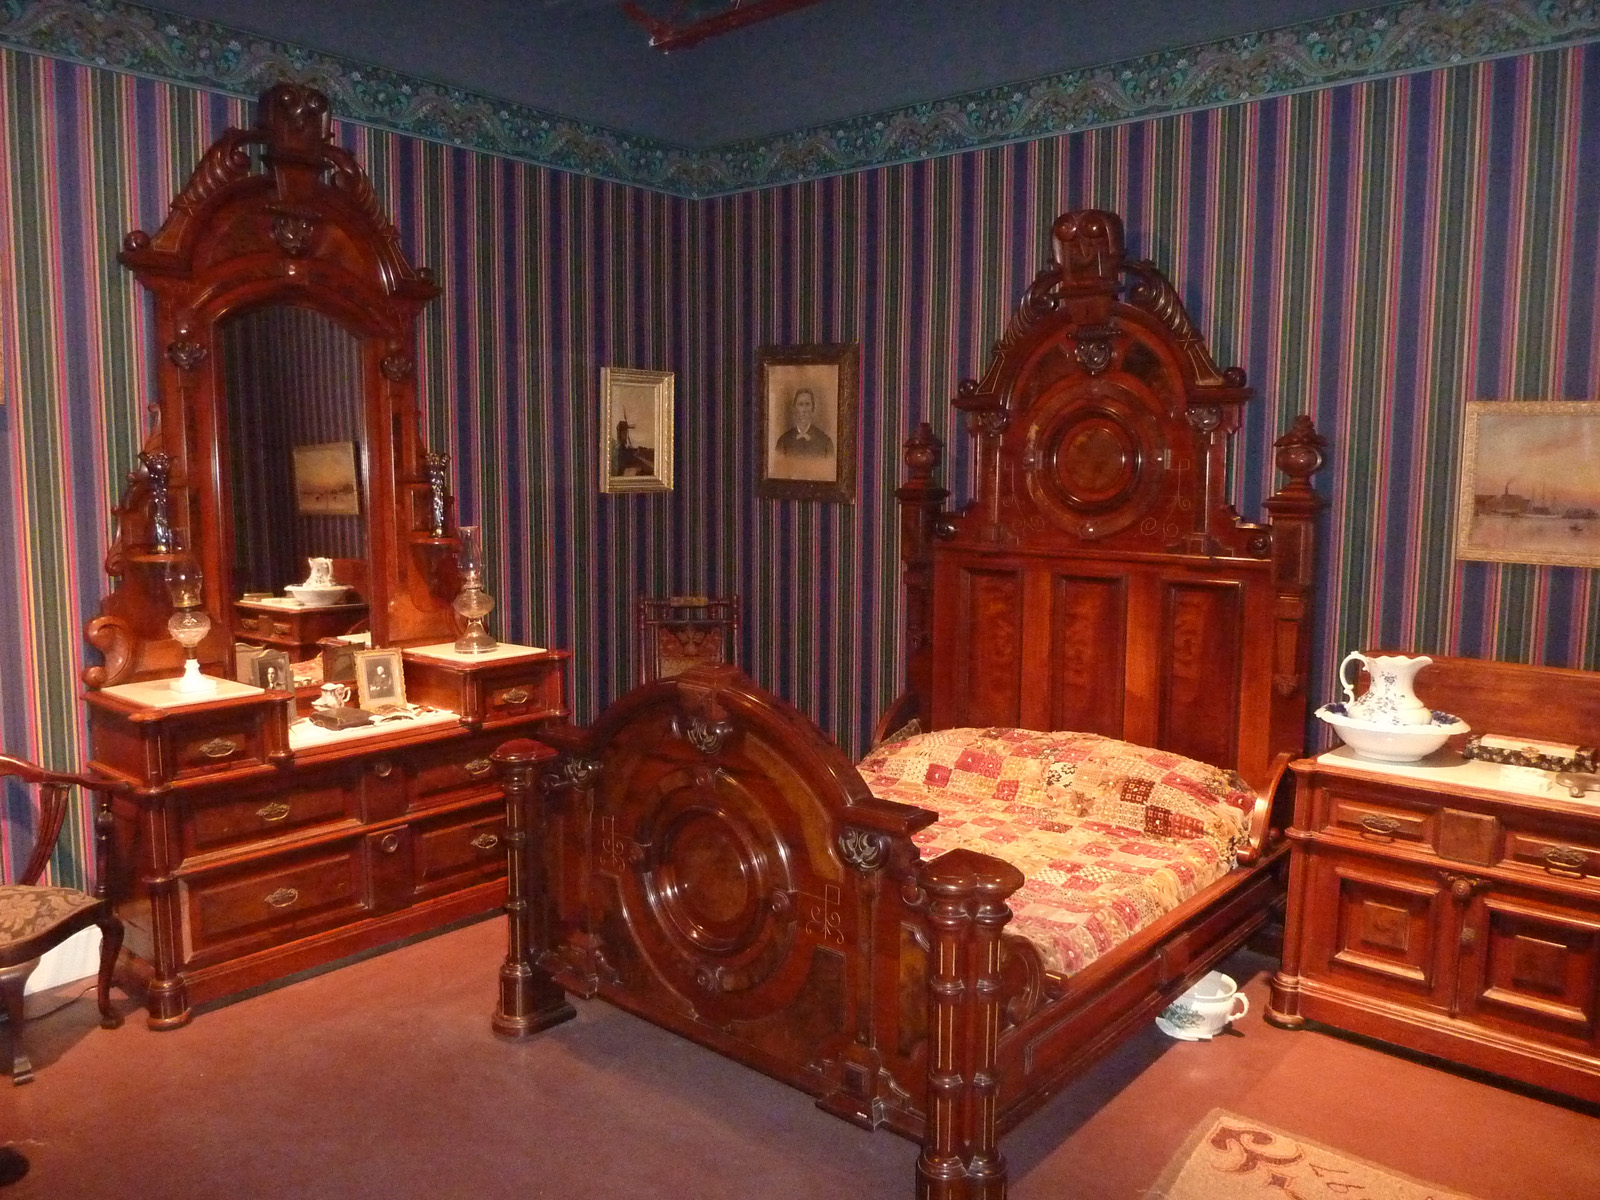 Hadley ives summer 2010 page 6 Victorian bedrooms